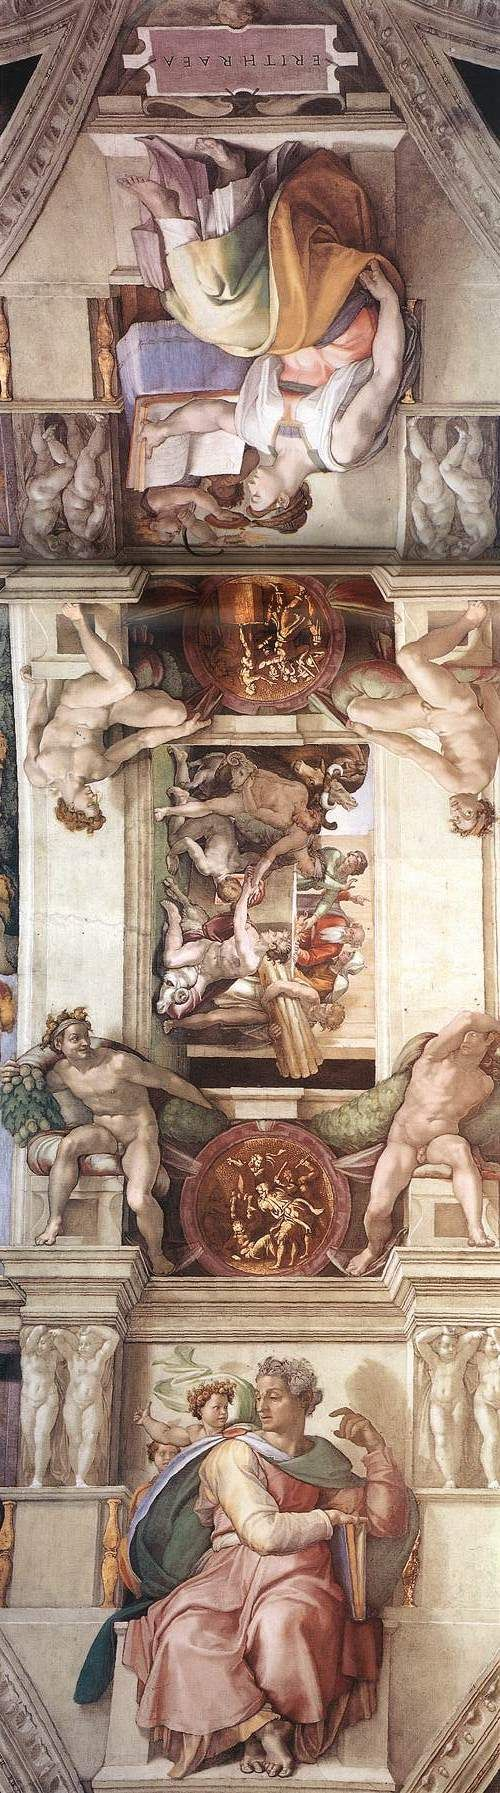 MICHELANGELO BUONARROTI - (1475 - 1564) - Sistine Chapel - Ceiling #michelangelo #paintings #art